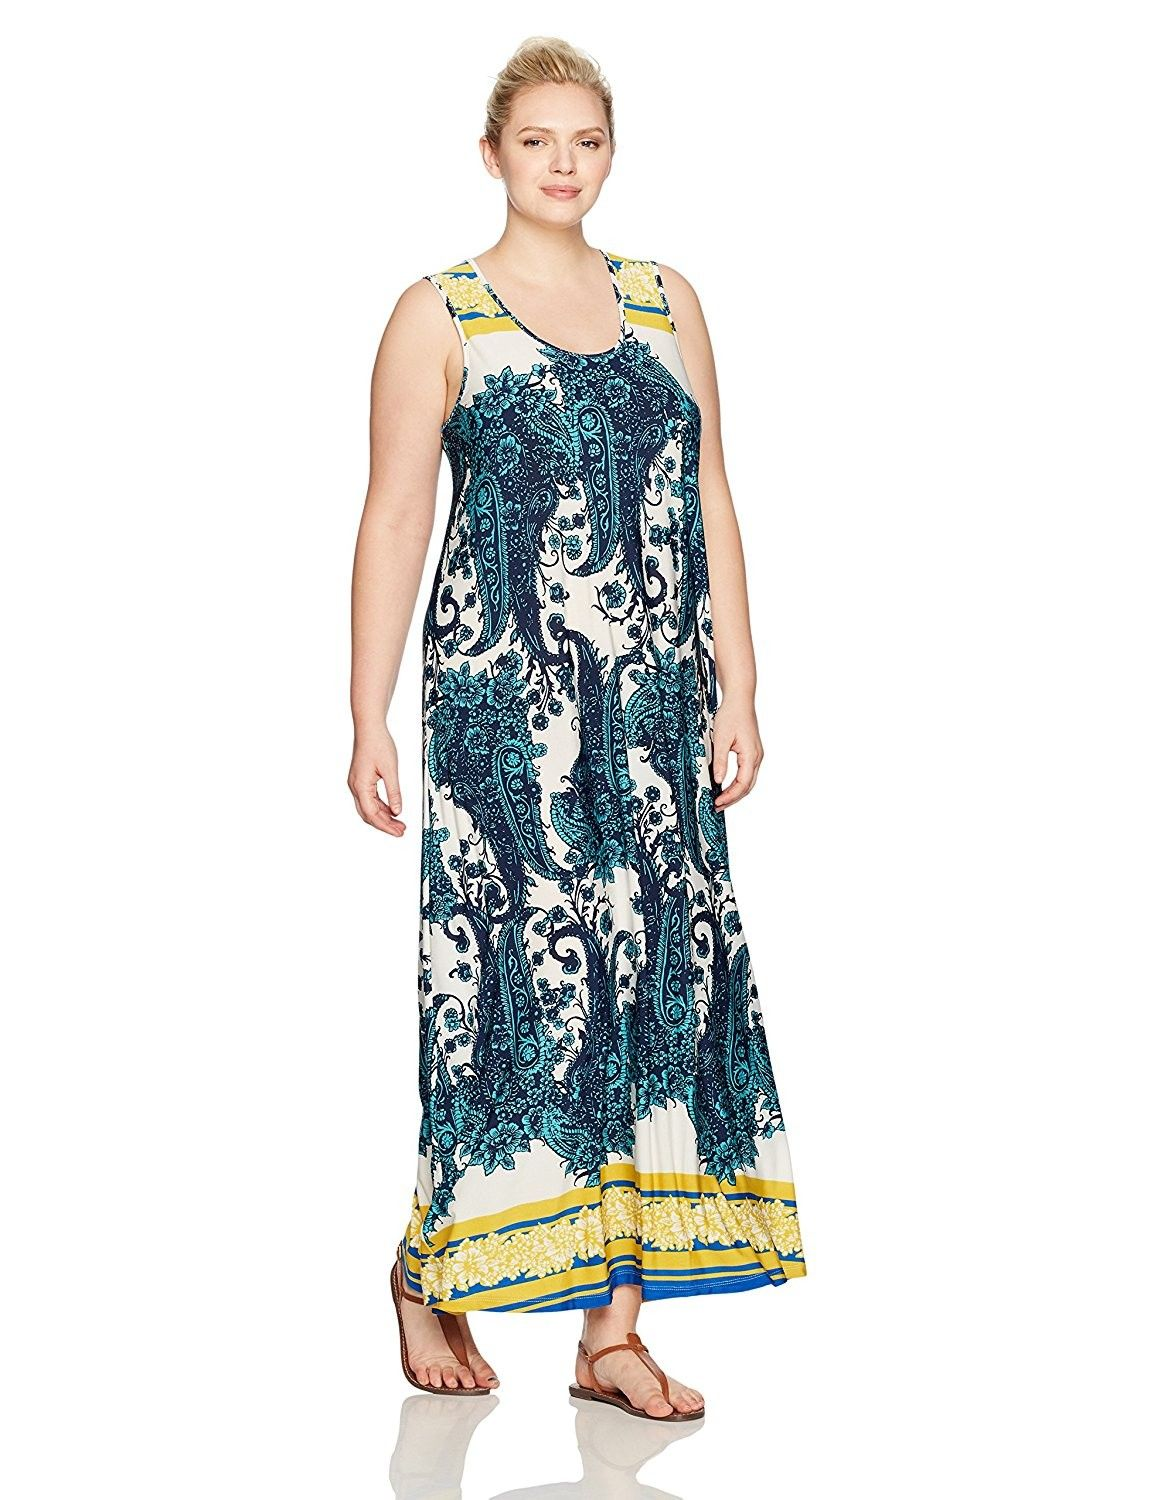 641d8829c Women's Clothing, Dresses, Casual, Women's Plus Size Sleeveless Floral  Print Maxi Dress With Lace Back - Bold Sunflower/Blue - CK12N4489FA #women  #fashion ...